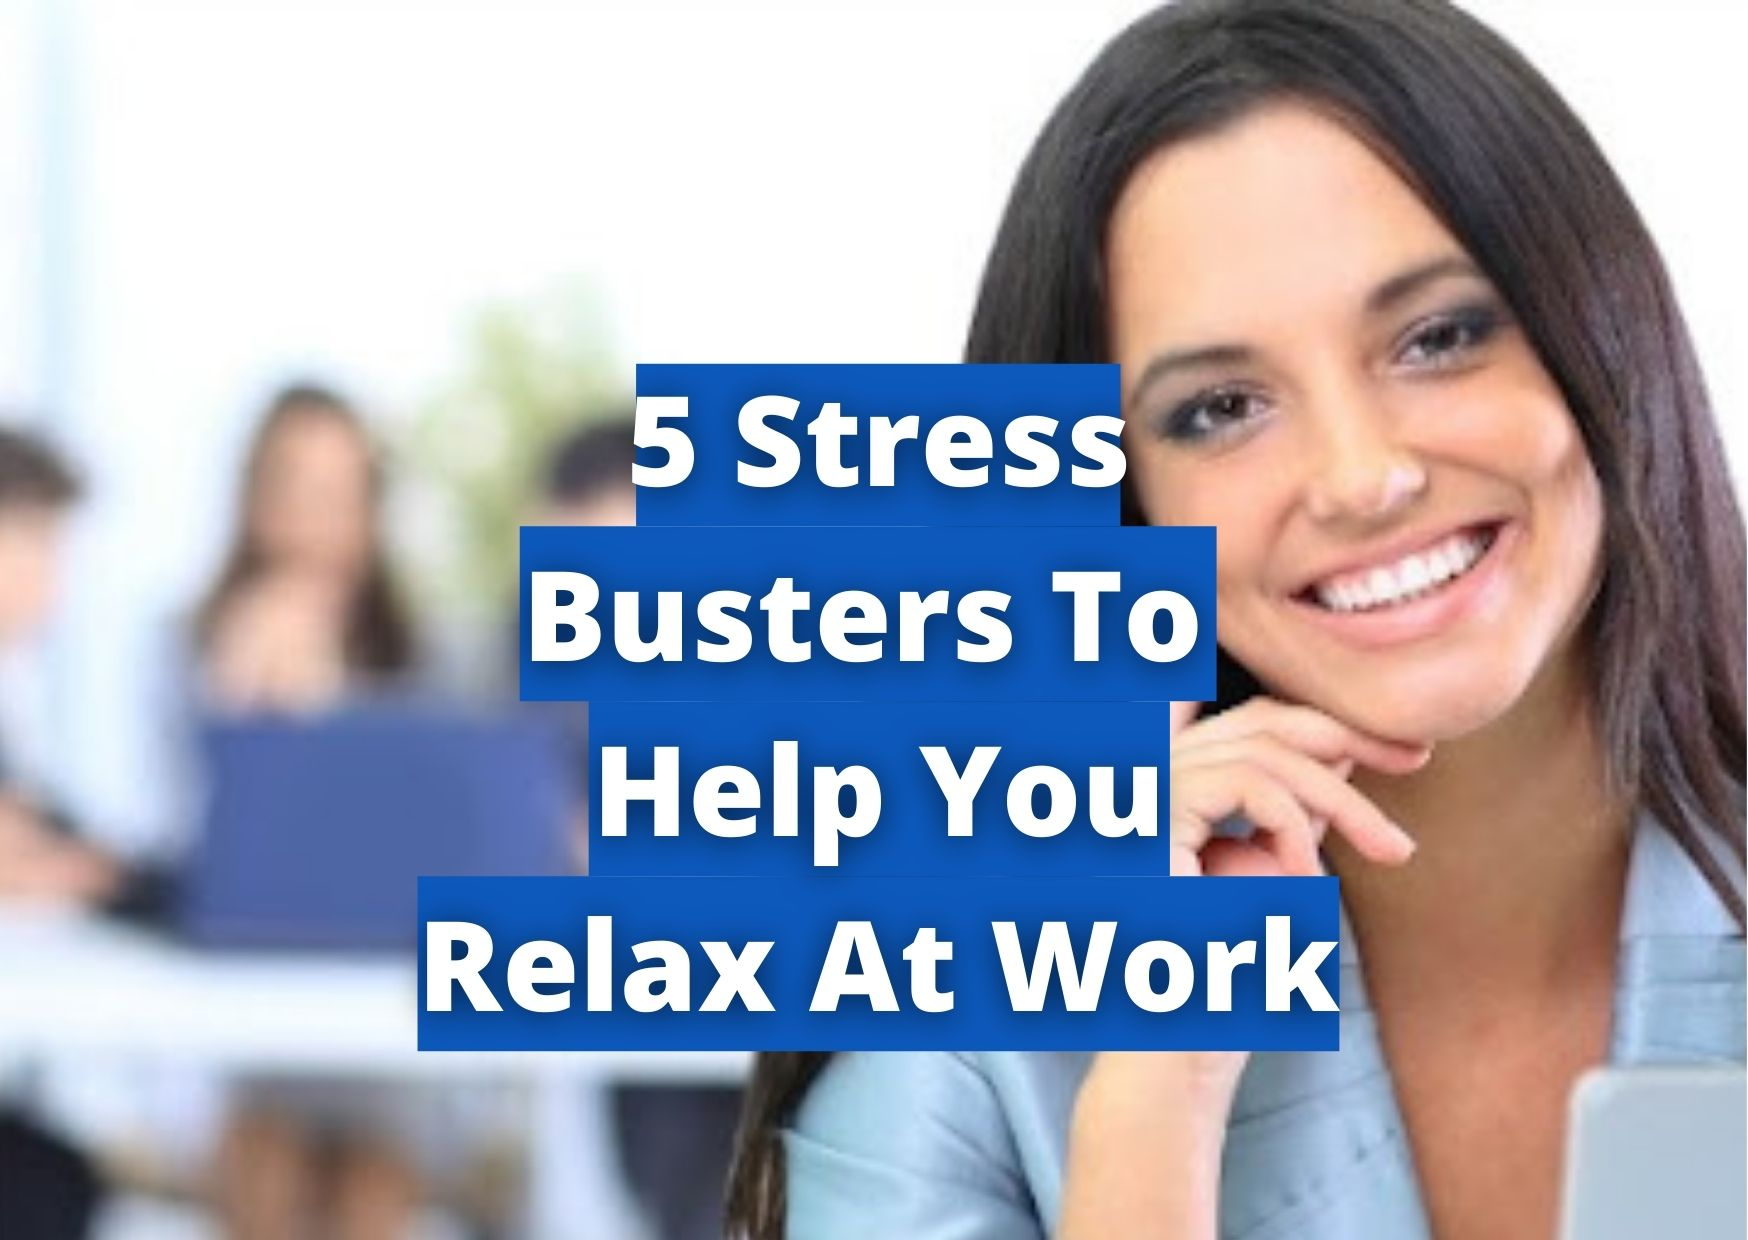 Stress busters for work